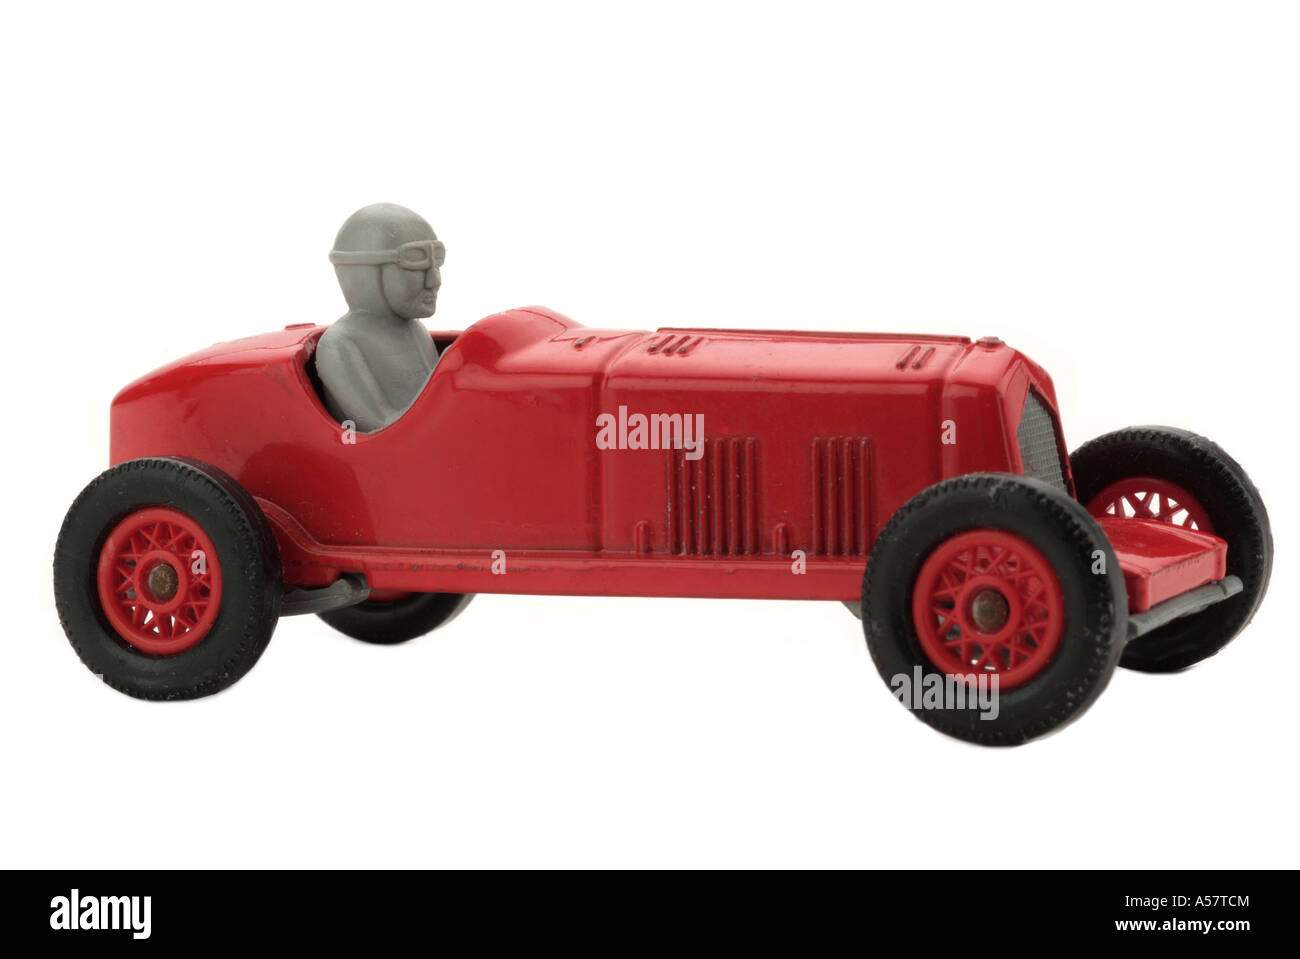 Red toy racing car old fashioned 1930 vehicle speed danger auto ...